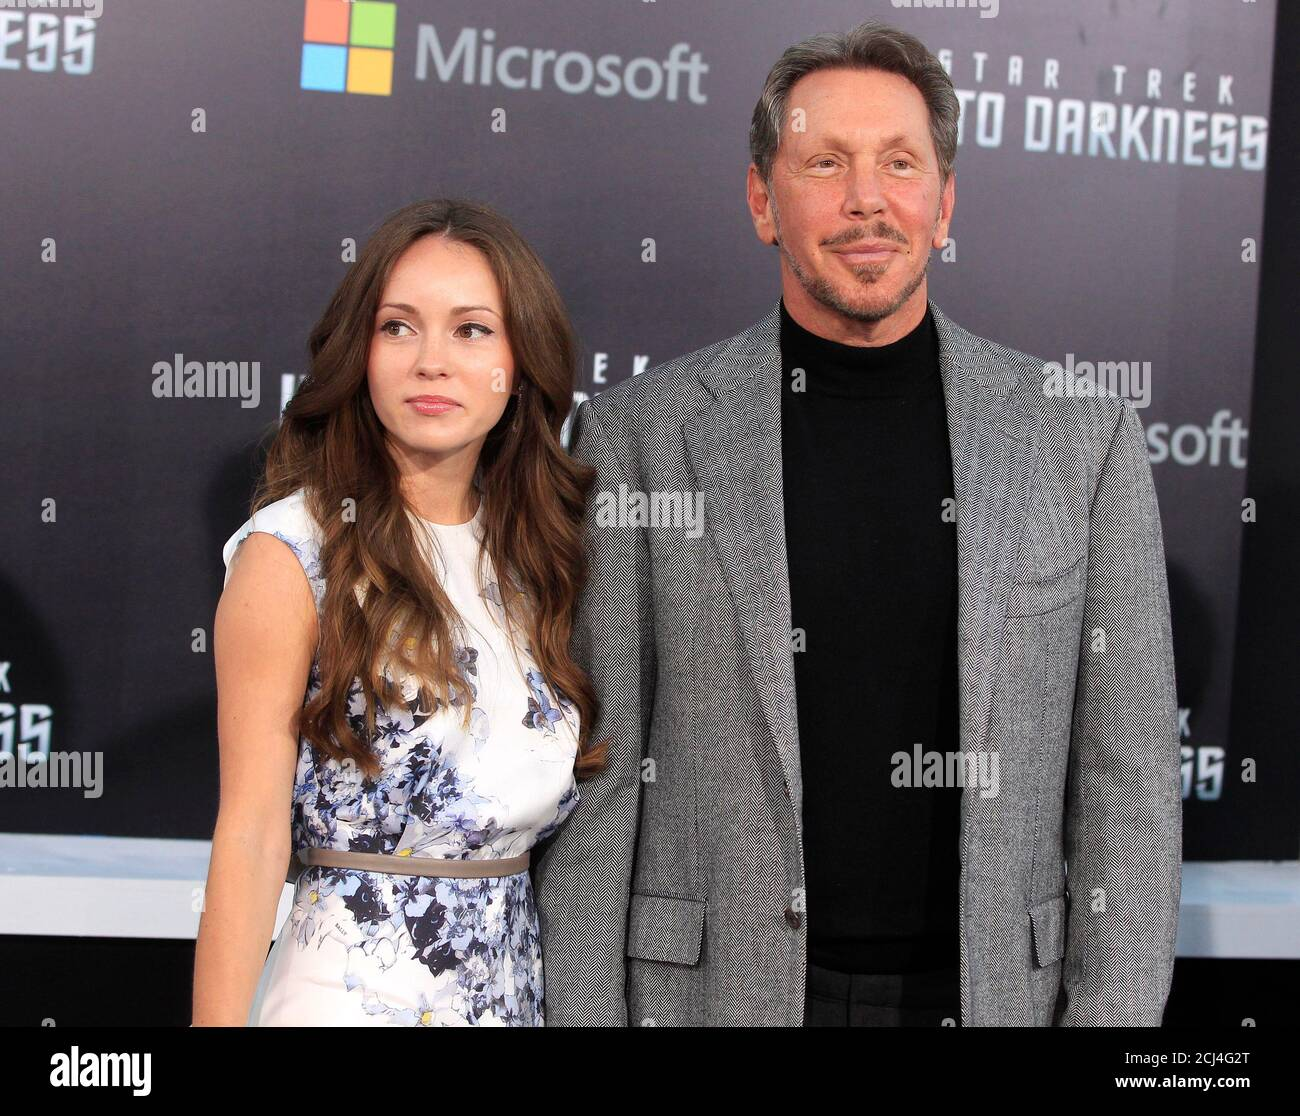 "Oracle CEO Larry Ellison and Nikita Kahn arrive as guests for the premiere of the new film ""Star Trek Into Darkness"" in Hollywood May 14, 2013. Ellison's son David is the executive producer of the film. REUTERS/Fred Prouser (UNITED STATES - Tags: ENTERTAINMENT BUSINESS) Stock Photo"